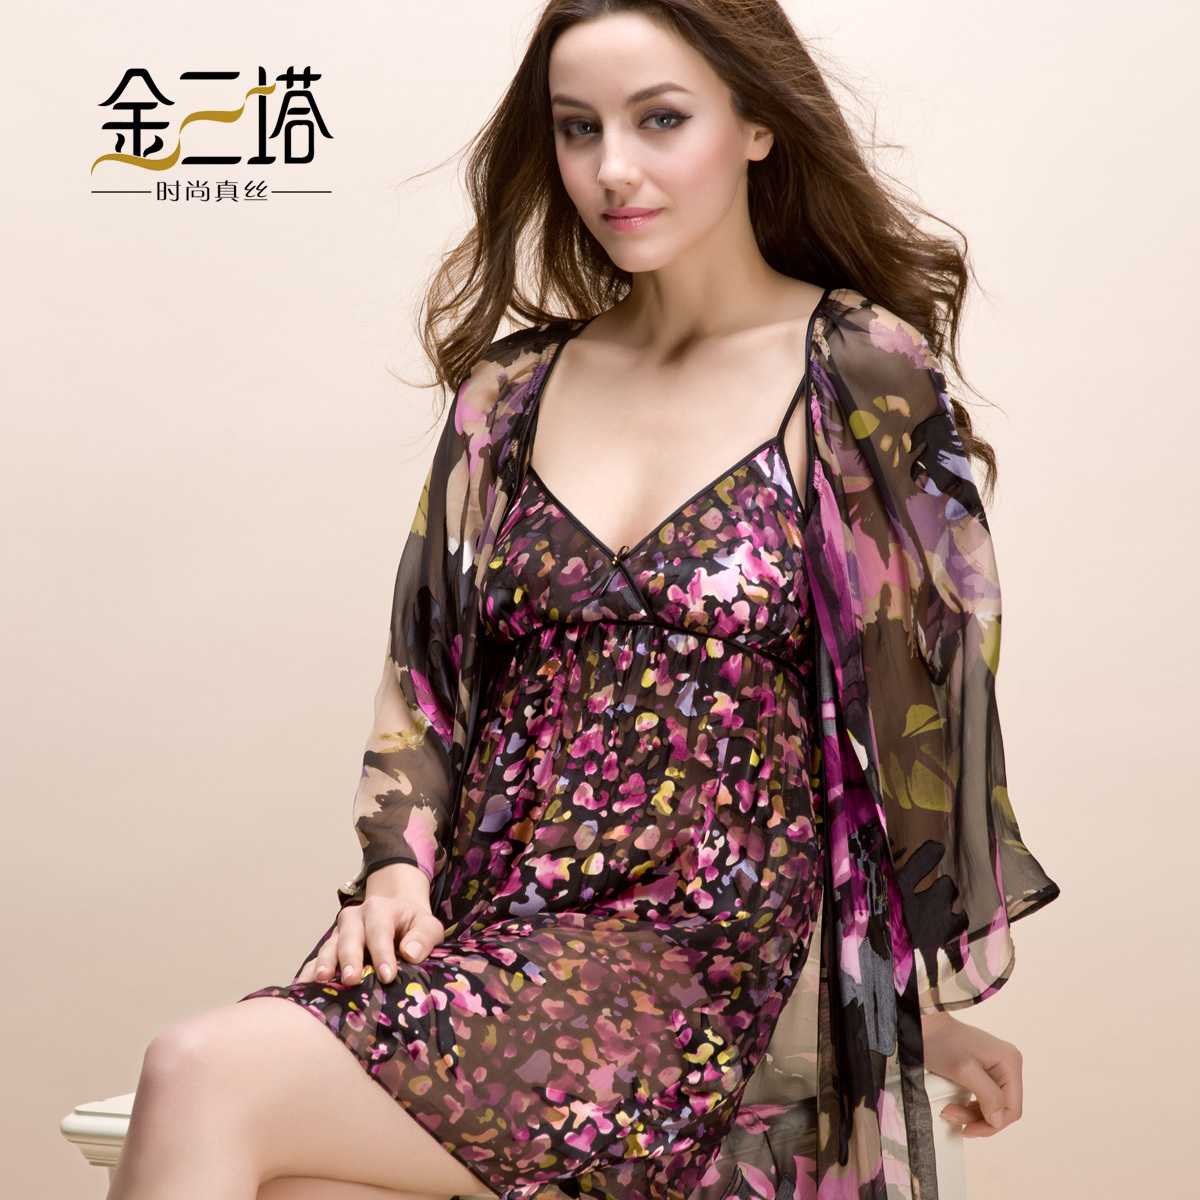 Здесь можно купить  Advanced mulberry silk sleepwear female aesthetic flower silk burnt-out raw silk robe set lounge set Advanced mulberry silk sleepwear female aesthetic flower silk burnt-out raw silk robe set lounge set Одежда и аксессуары